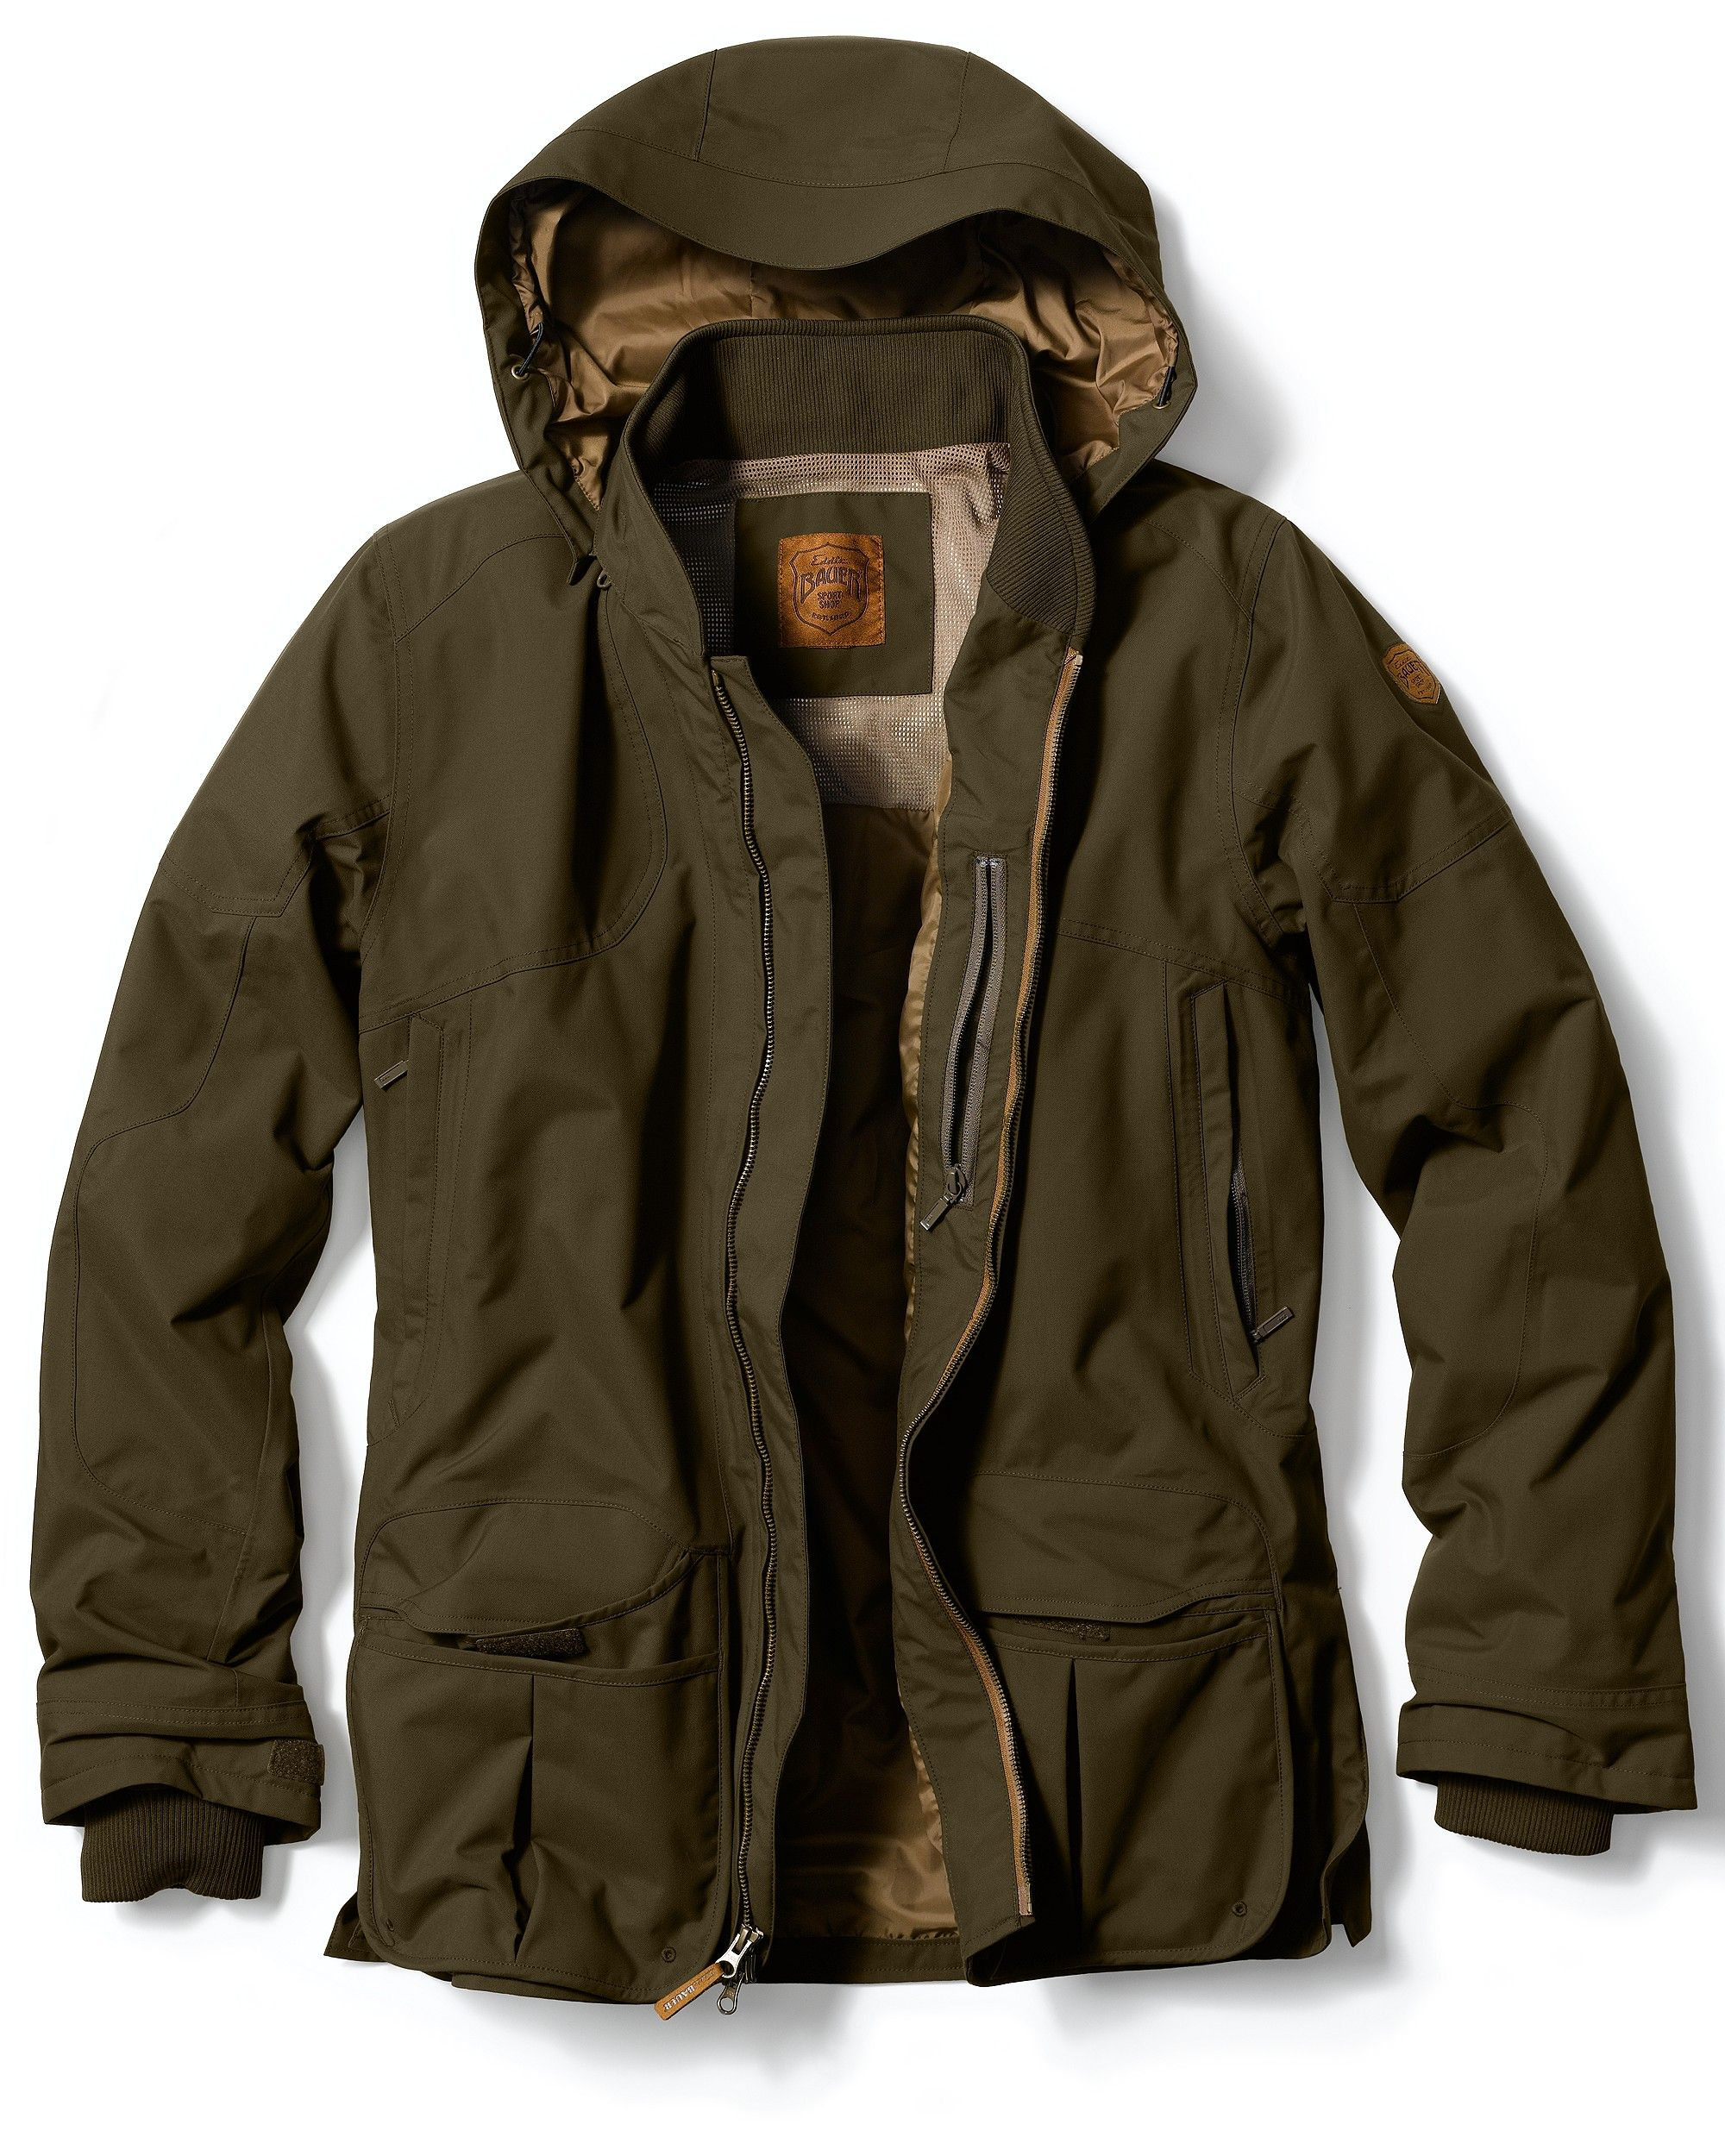 28b3aaceeab3 Waterproof Shooting Jacket   If you spend a lot of time at an outdoor  range, you ve probably shot your share of rounds in the rain.